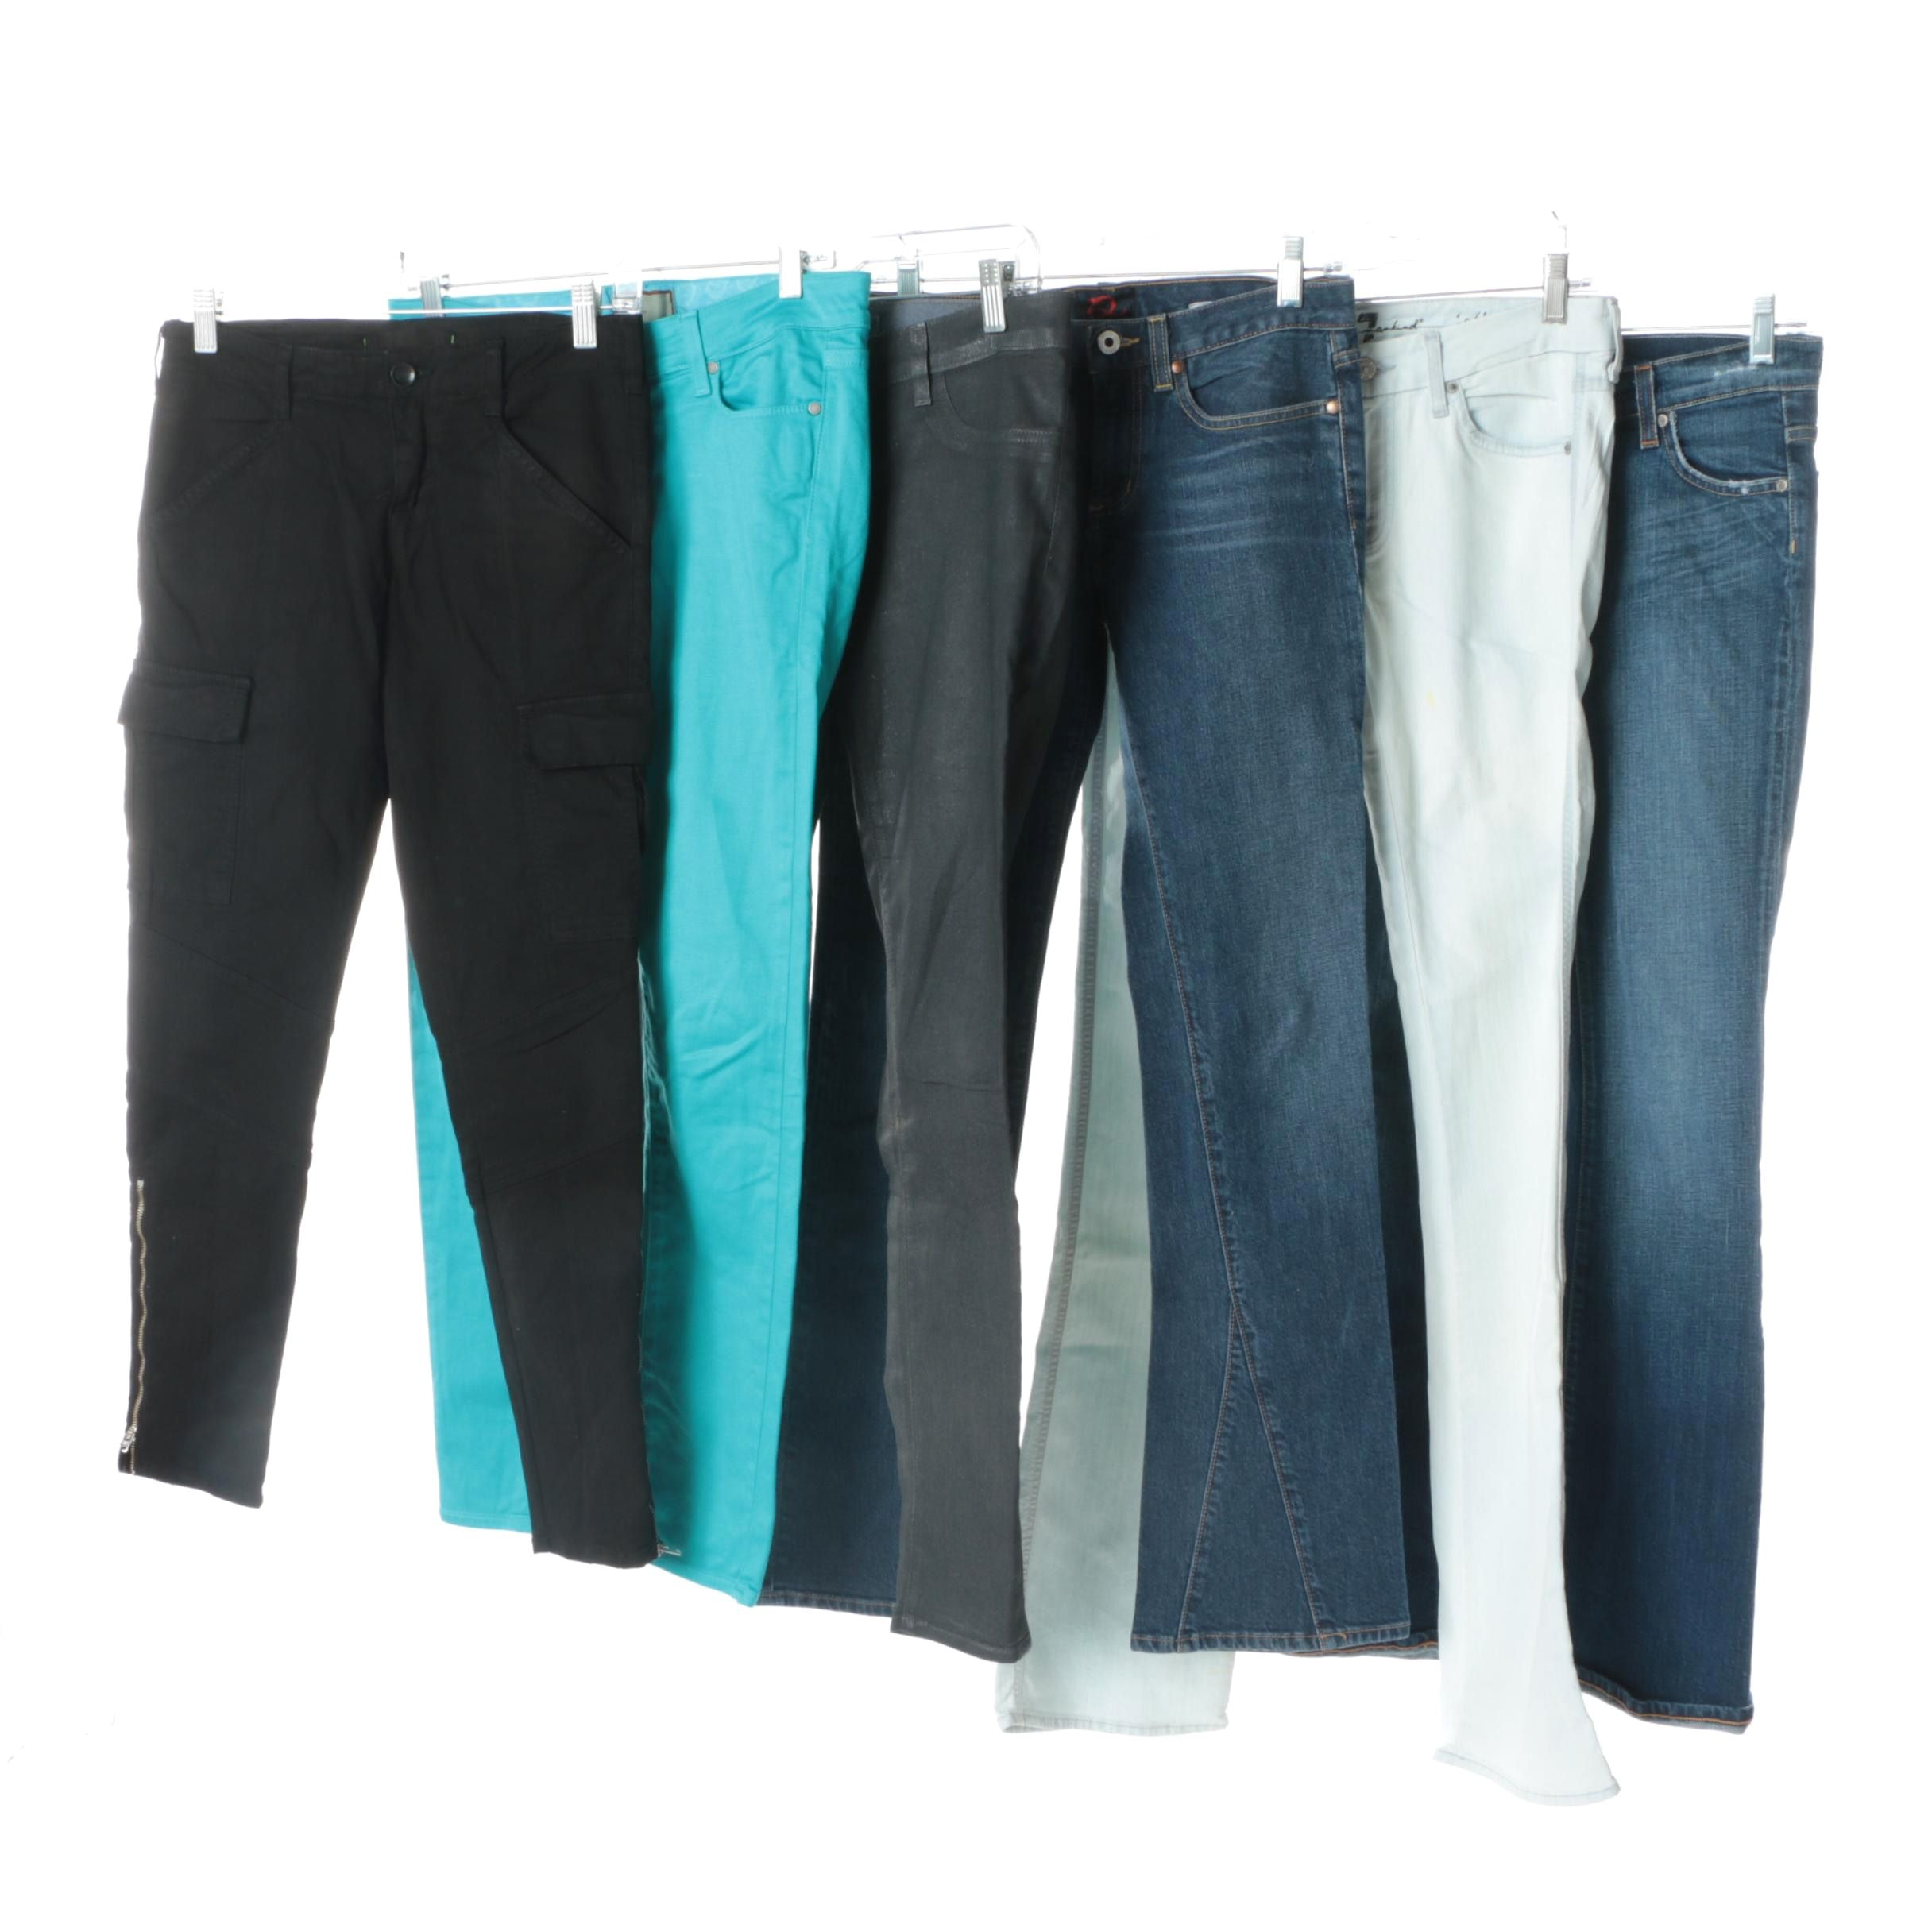 Women's Jeans and Pants Including J Brand and 7 For All Mankind